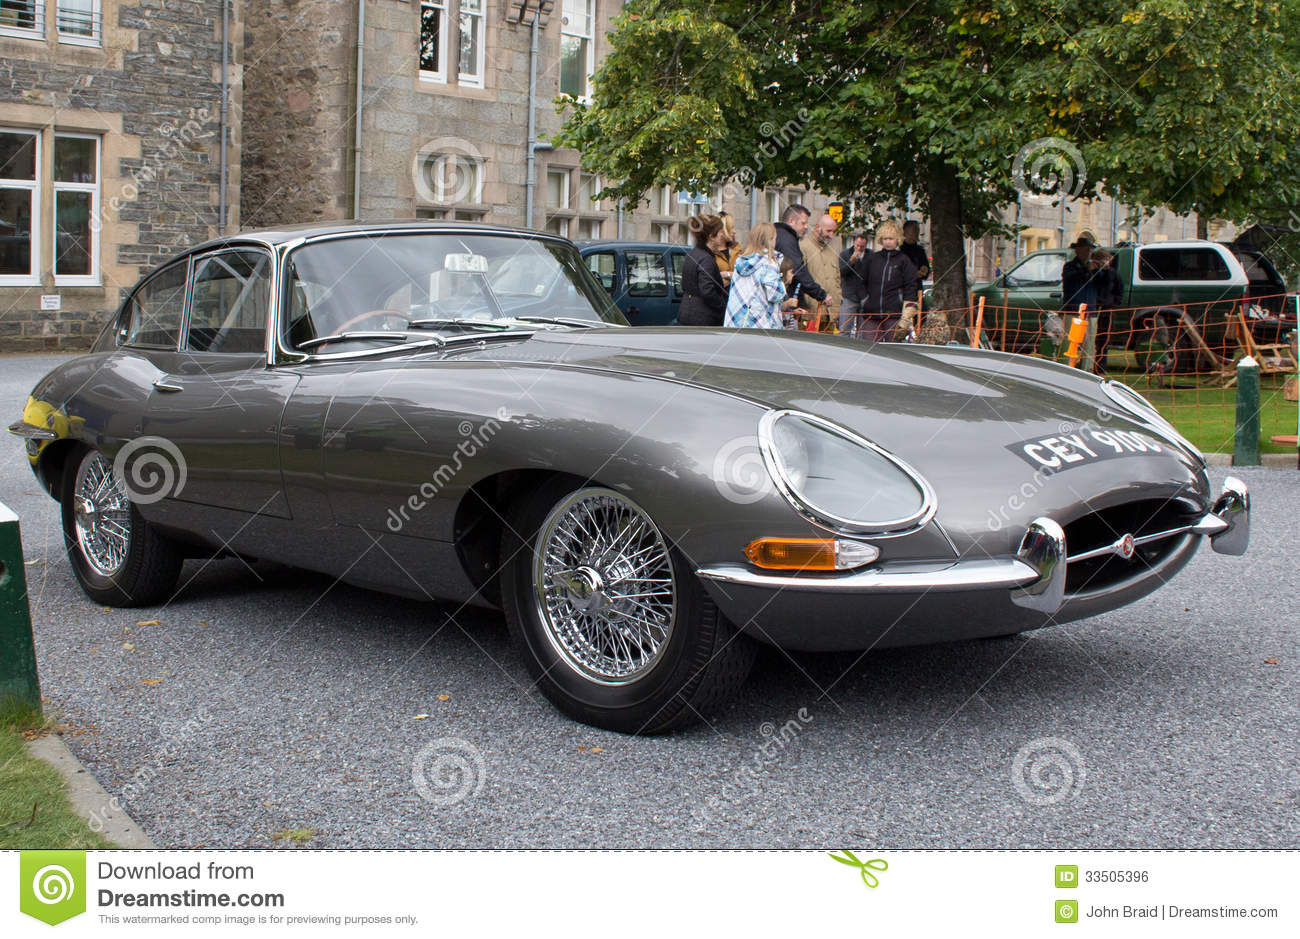 beautifully restored classic jaguar sports car mr no pr no 2 271 1